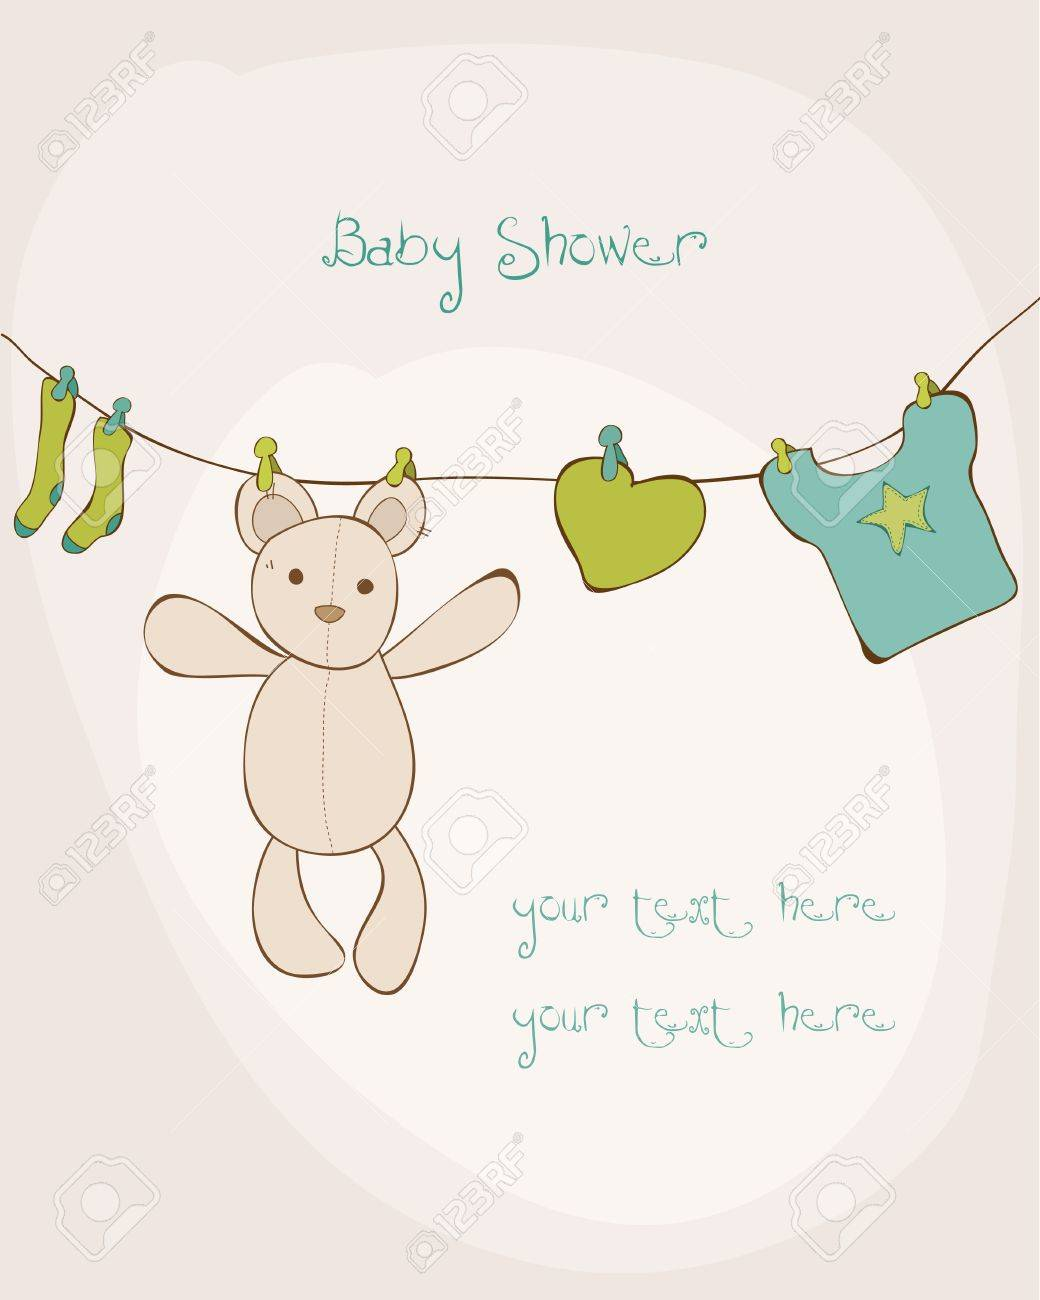 Baby Shower Karte Text.Baby Shower Card With Place For Your Text In Vector